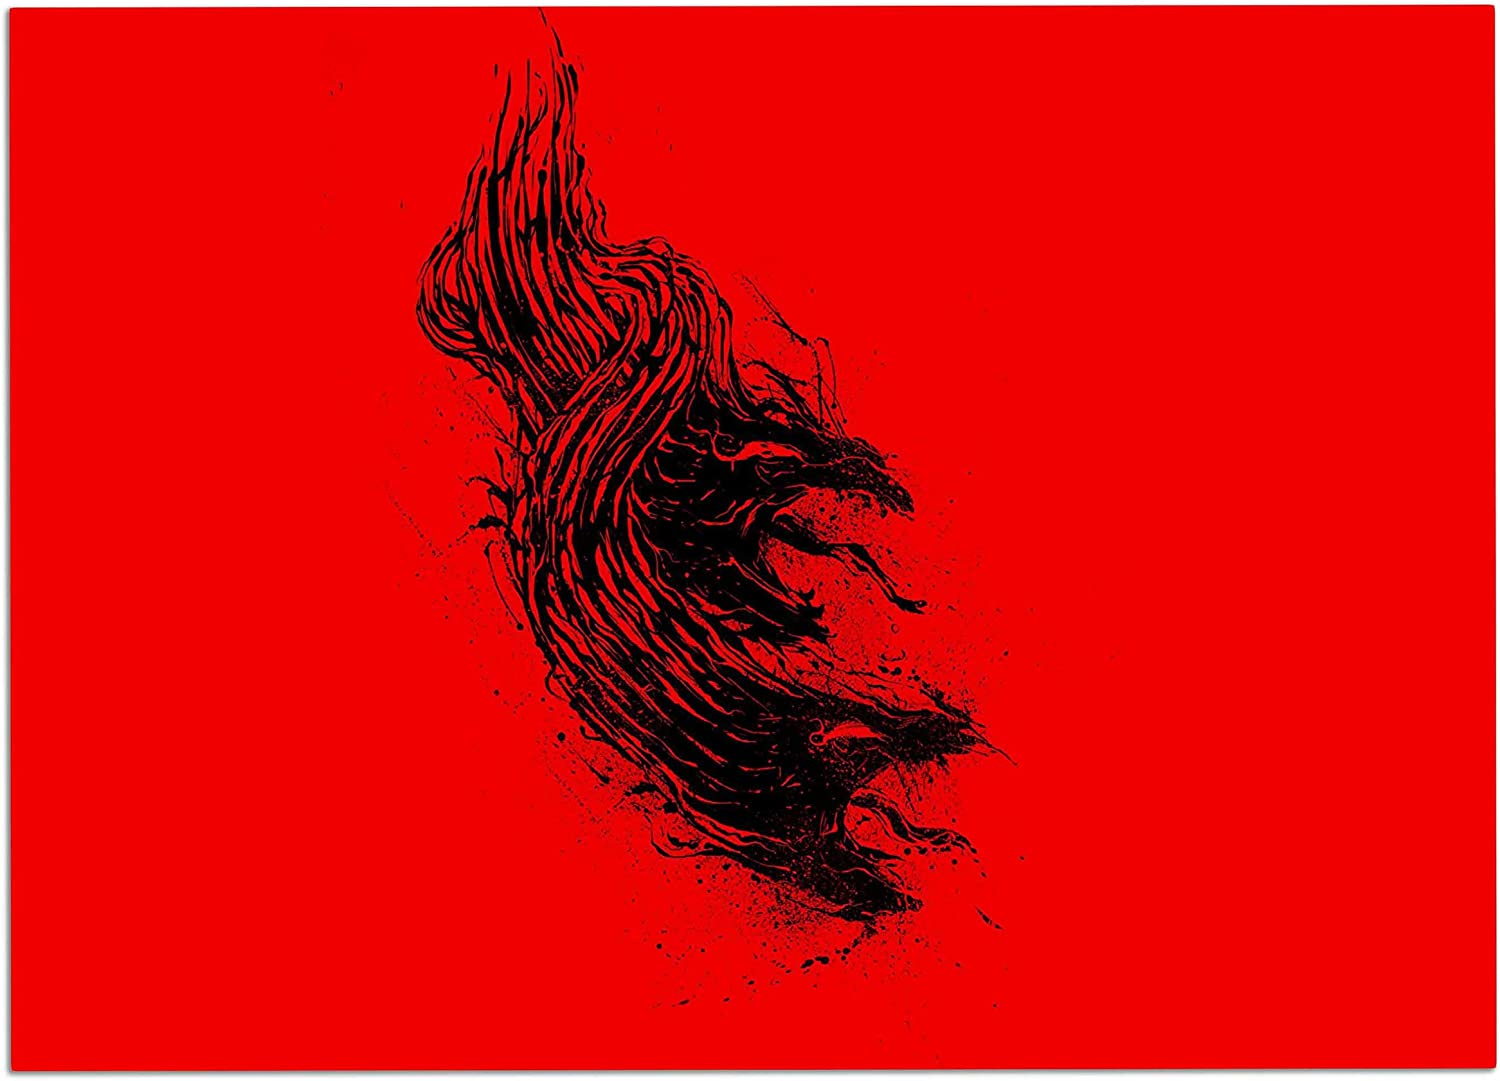 KESS InHouse RT1079ADM02 BarmalisiRTB Came from Hell Red Digital Dog Place Mat, 24  x 15